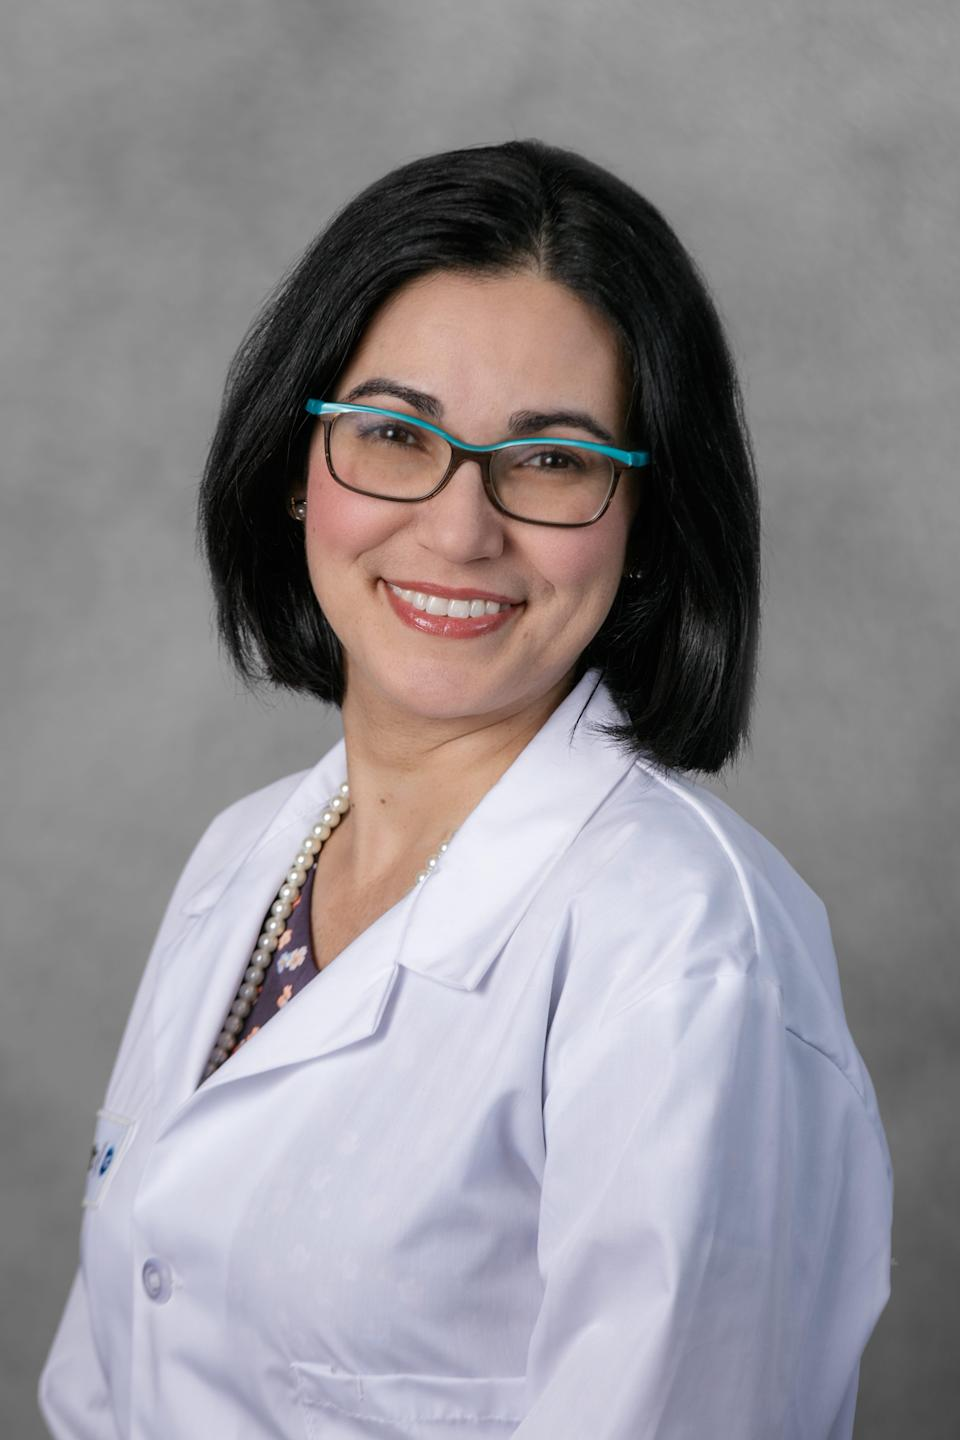 Dr. Marina Del Rios, director of social emergency medicine and associate professor of emergency medicine at the University of Illinois at Chicago, says health officials must stress to the public that the pause proves that the vaccines are being carefully monitored.